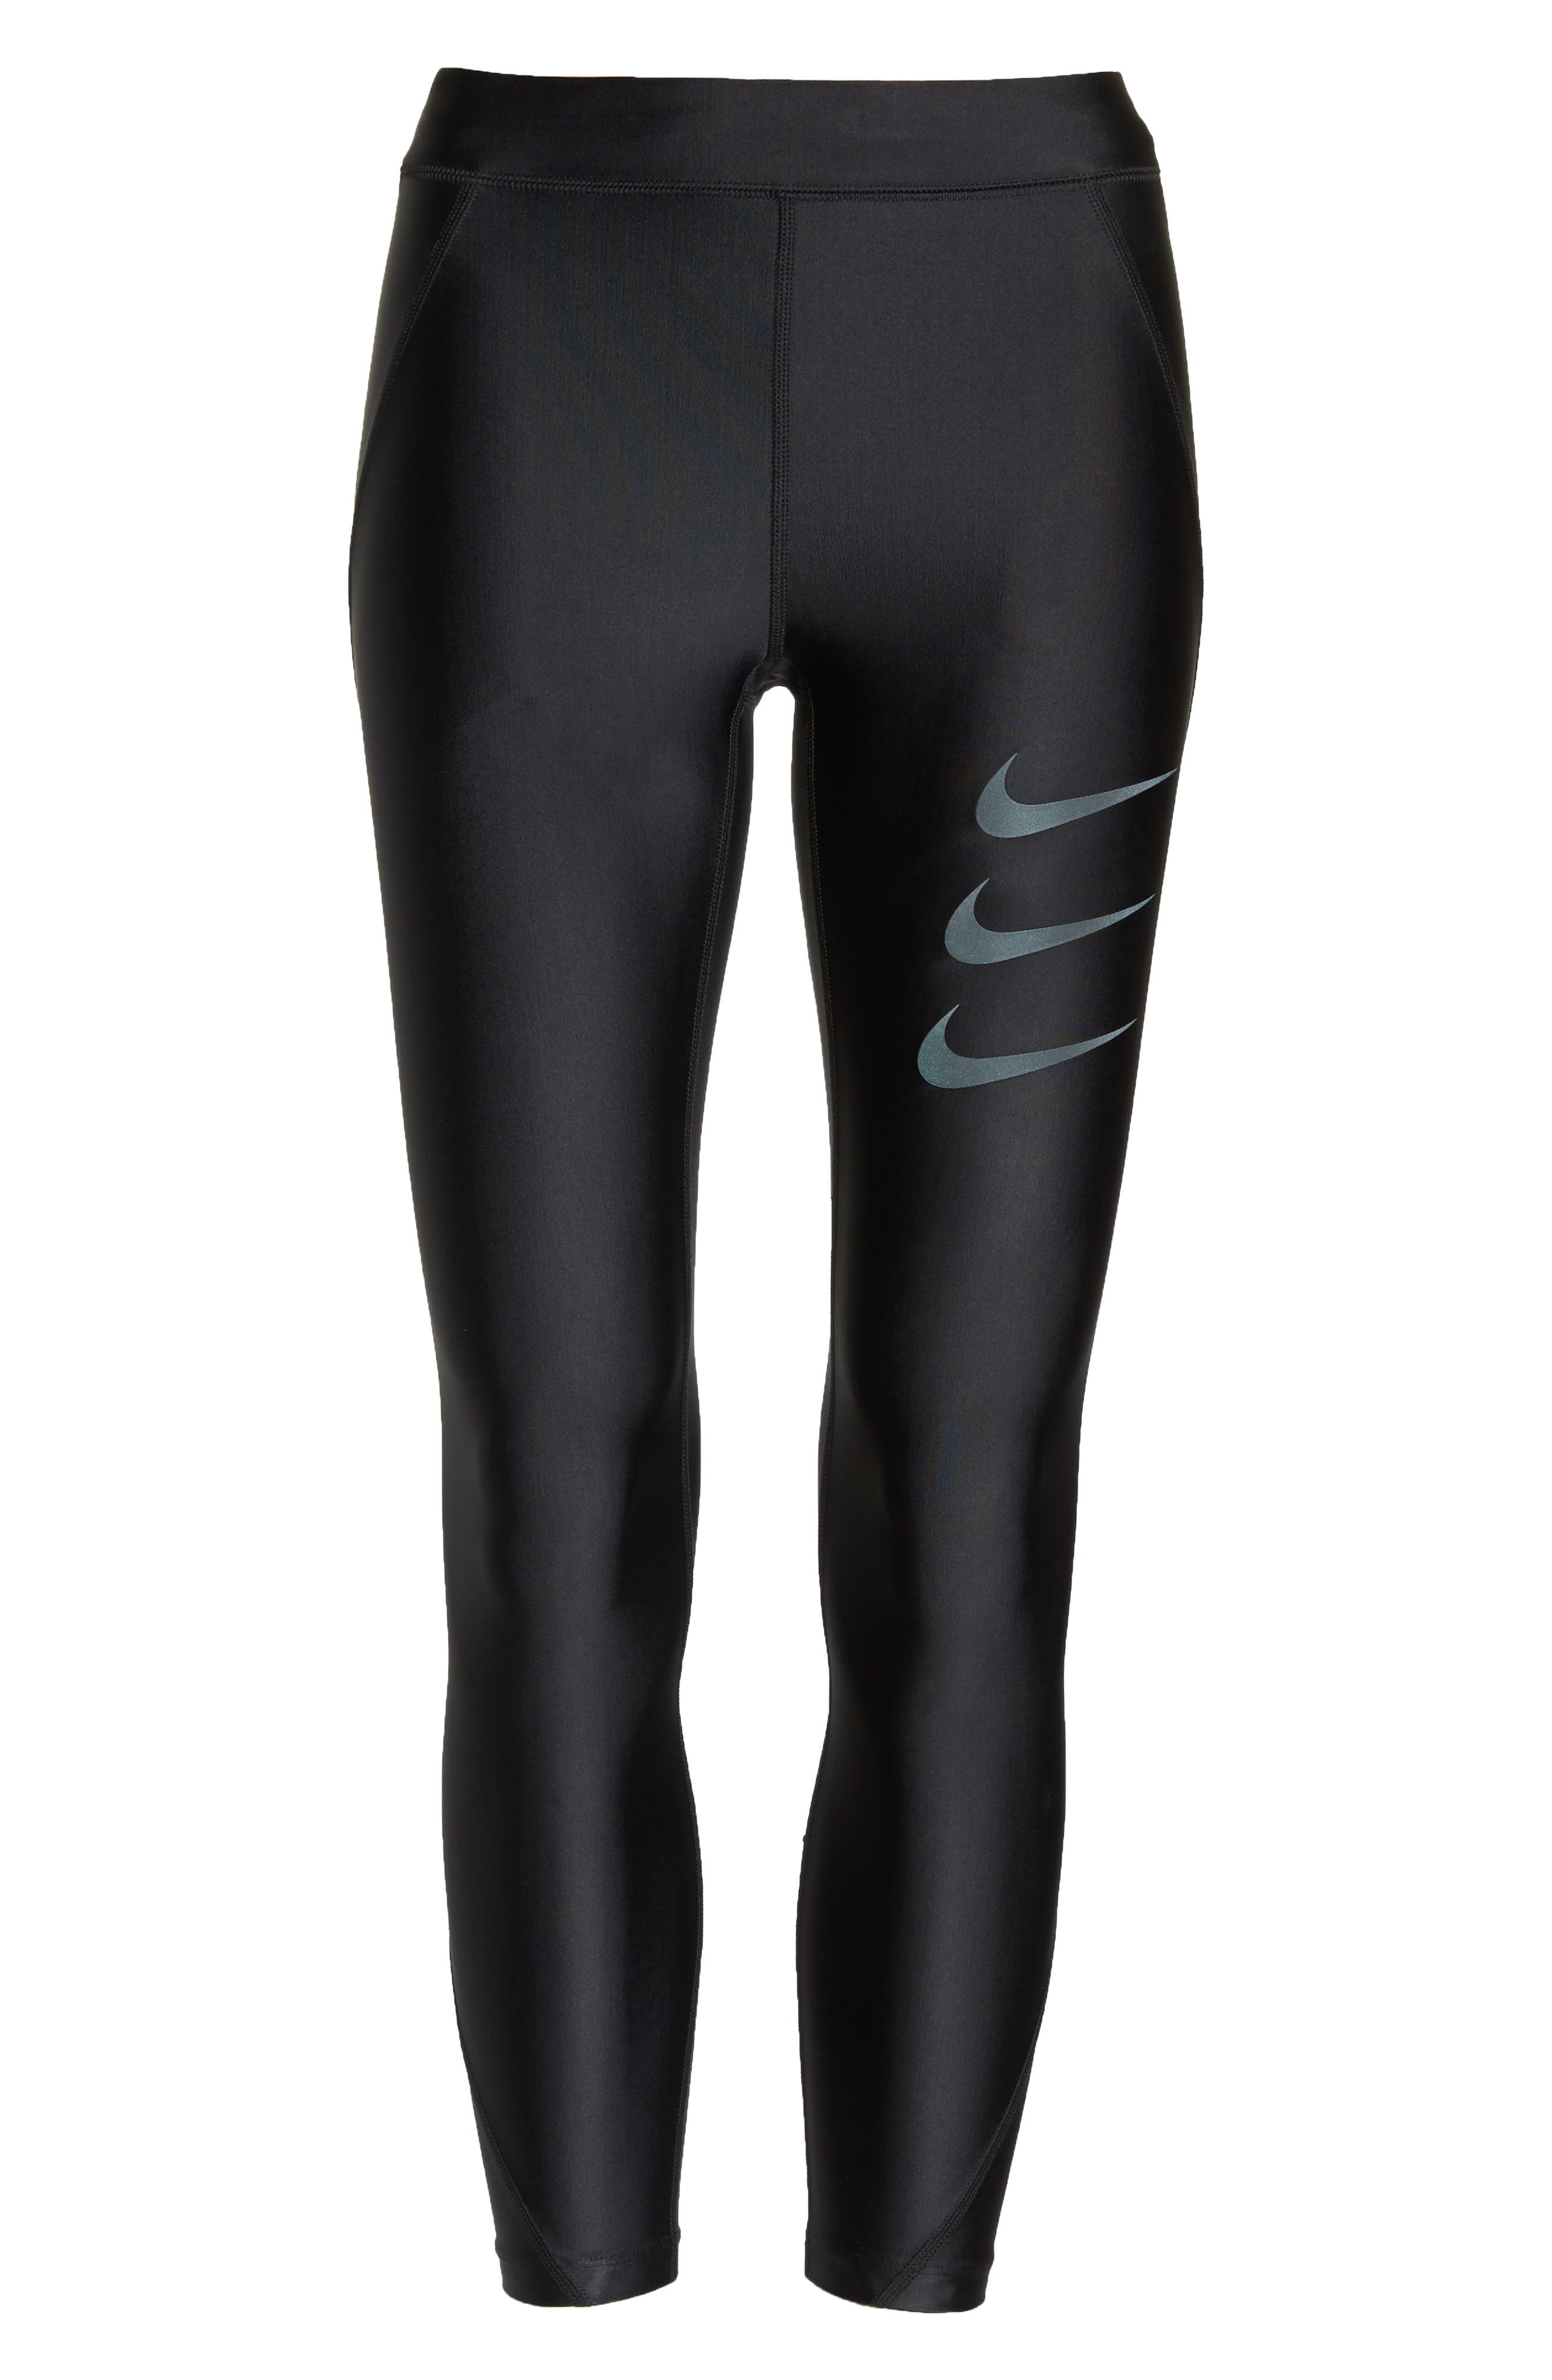 Speed Women's Running Tights,                             Main thumbnail 1, color,                             010